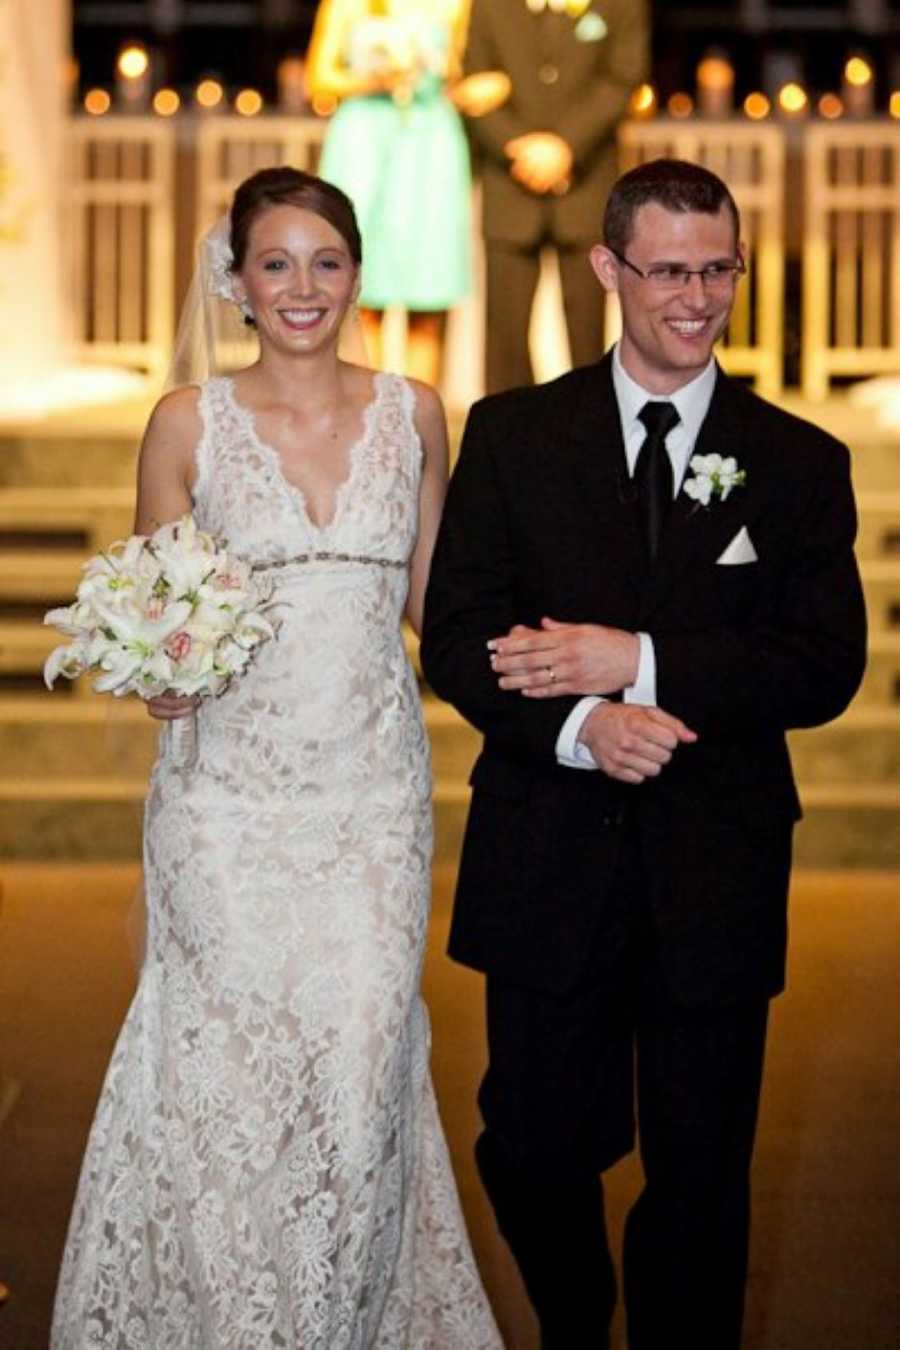 Newly wed couple smile as they walk down the aisle after exchanging their vows